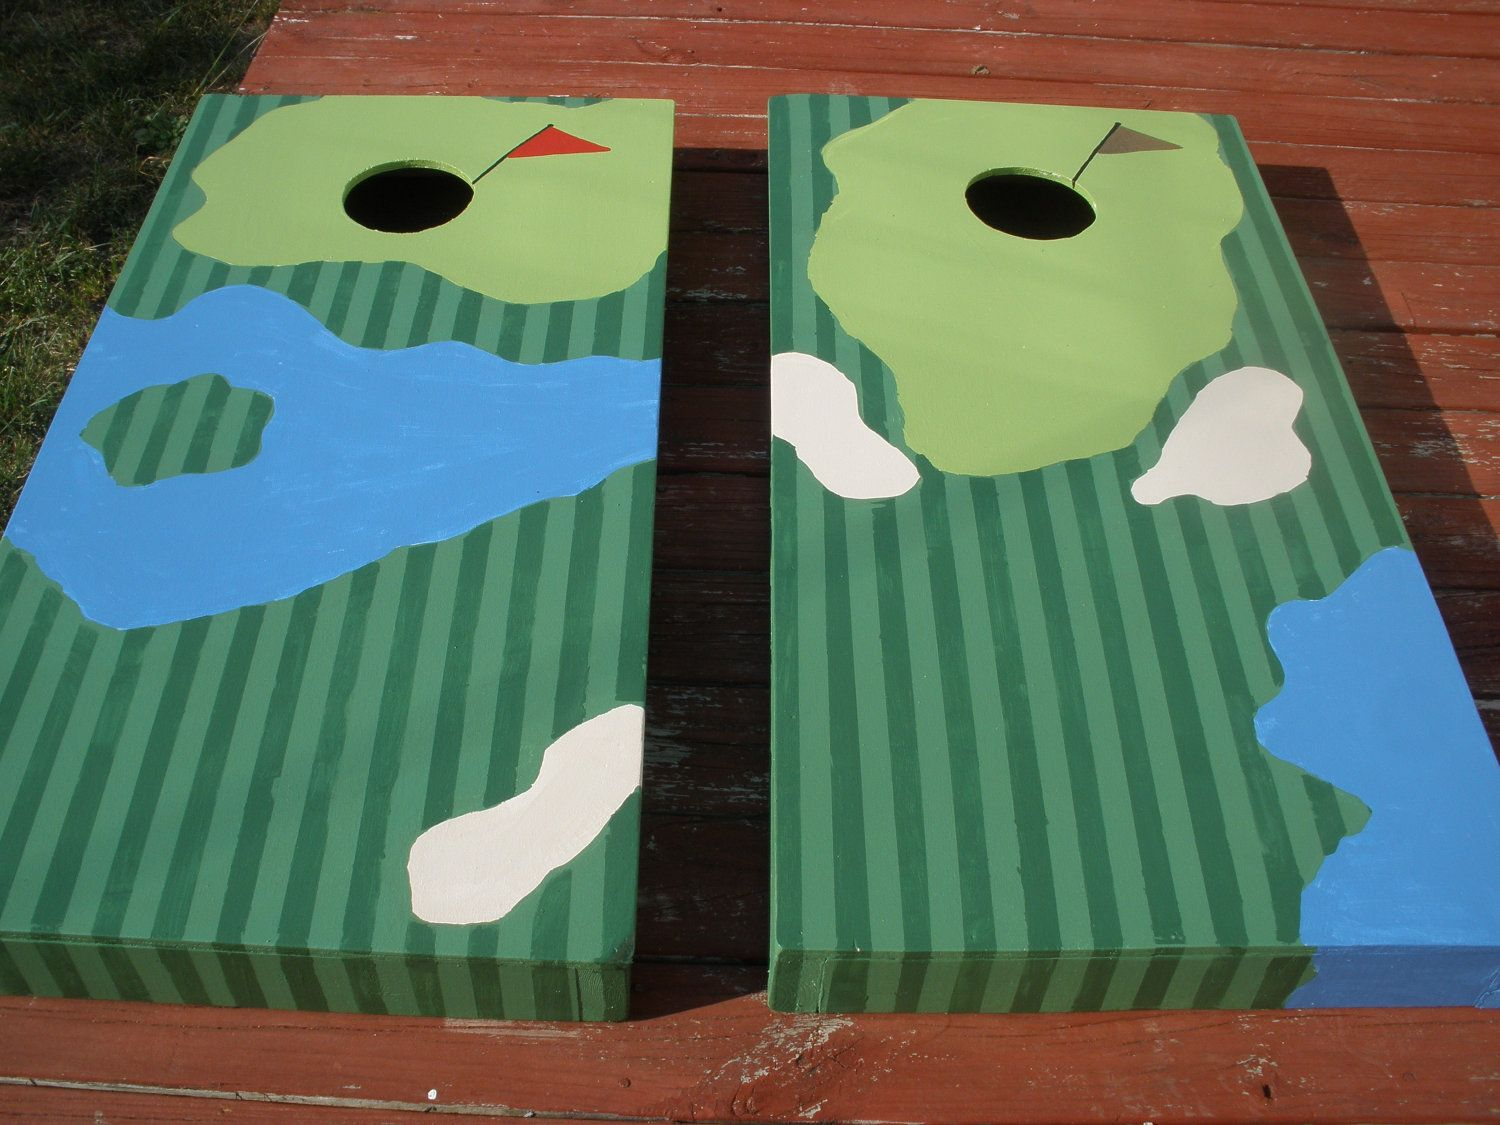 cs cornhole sports design - Cornhole Design Ideas